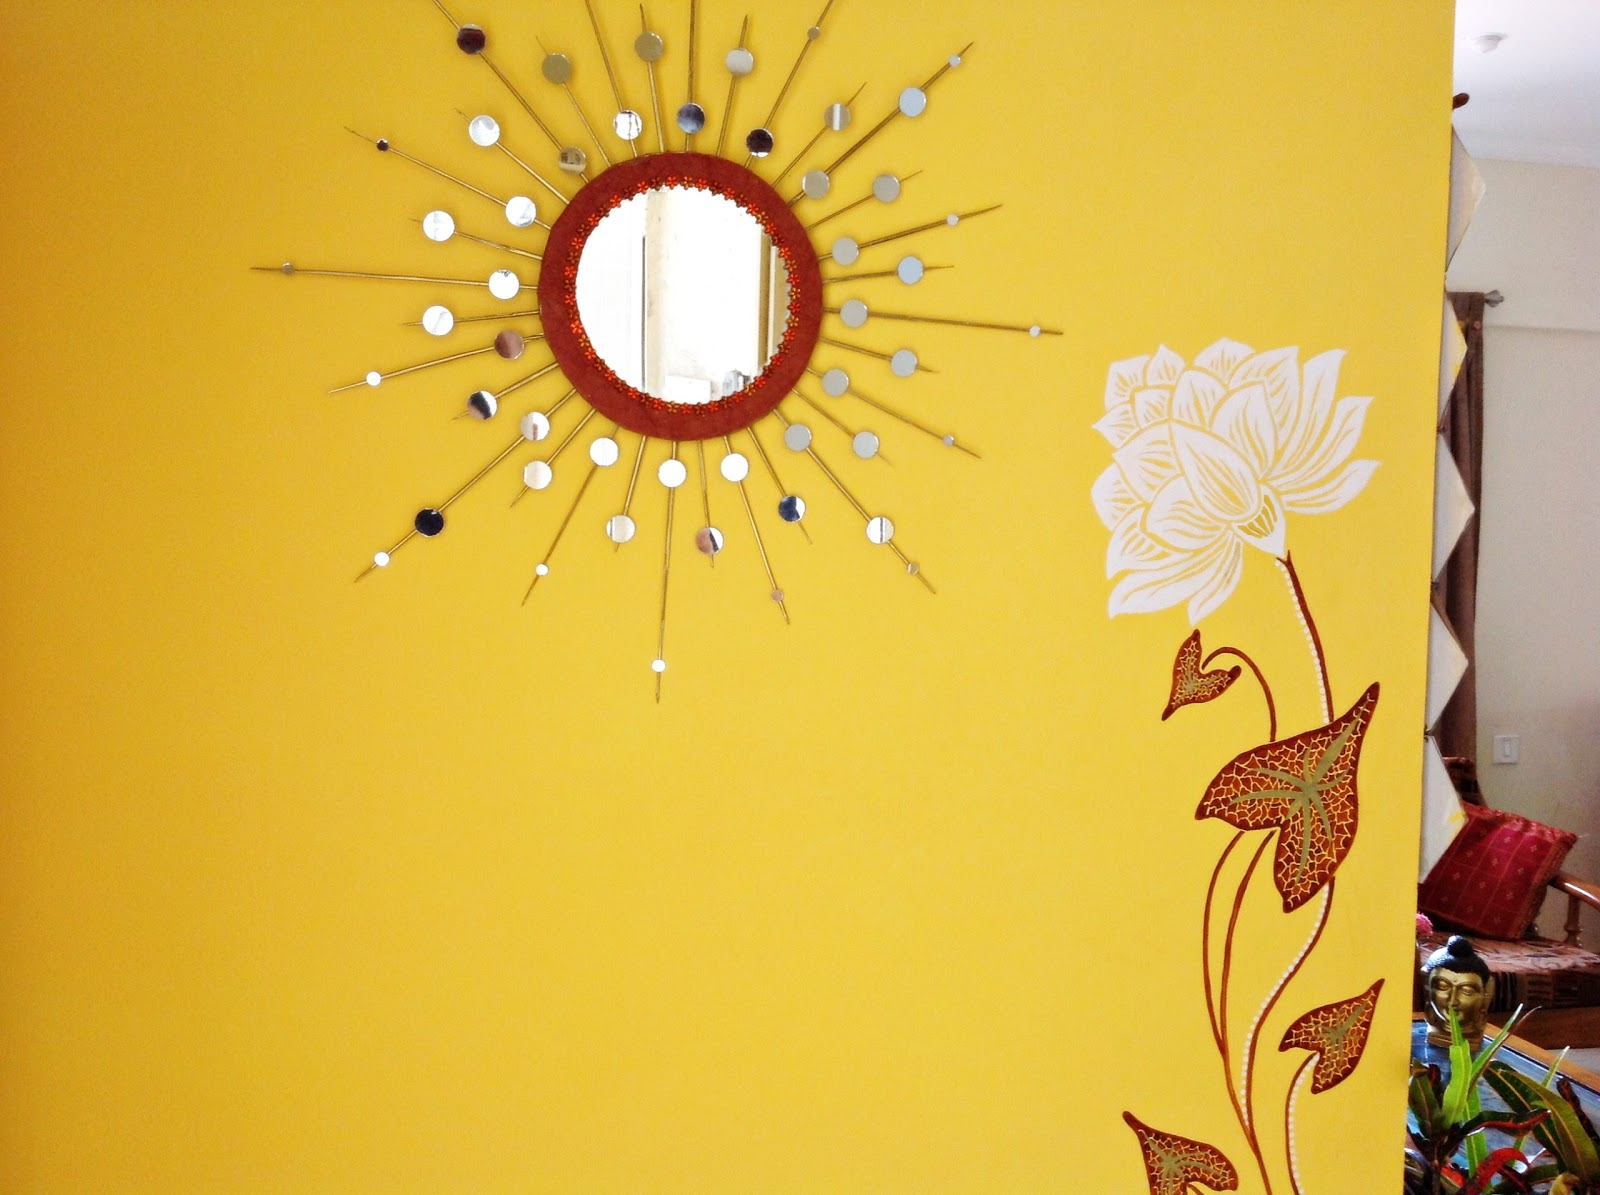 Design Decor & Disha | An Indian Design & Decor Blog: DIY: Sunburst ...